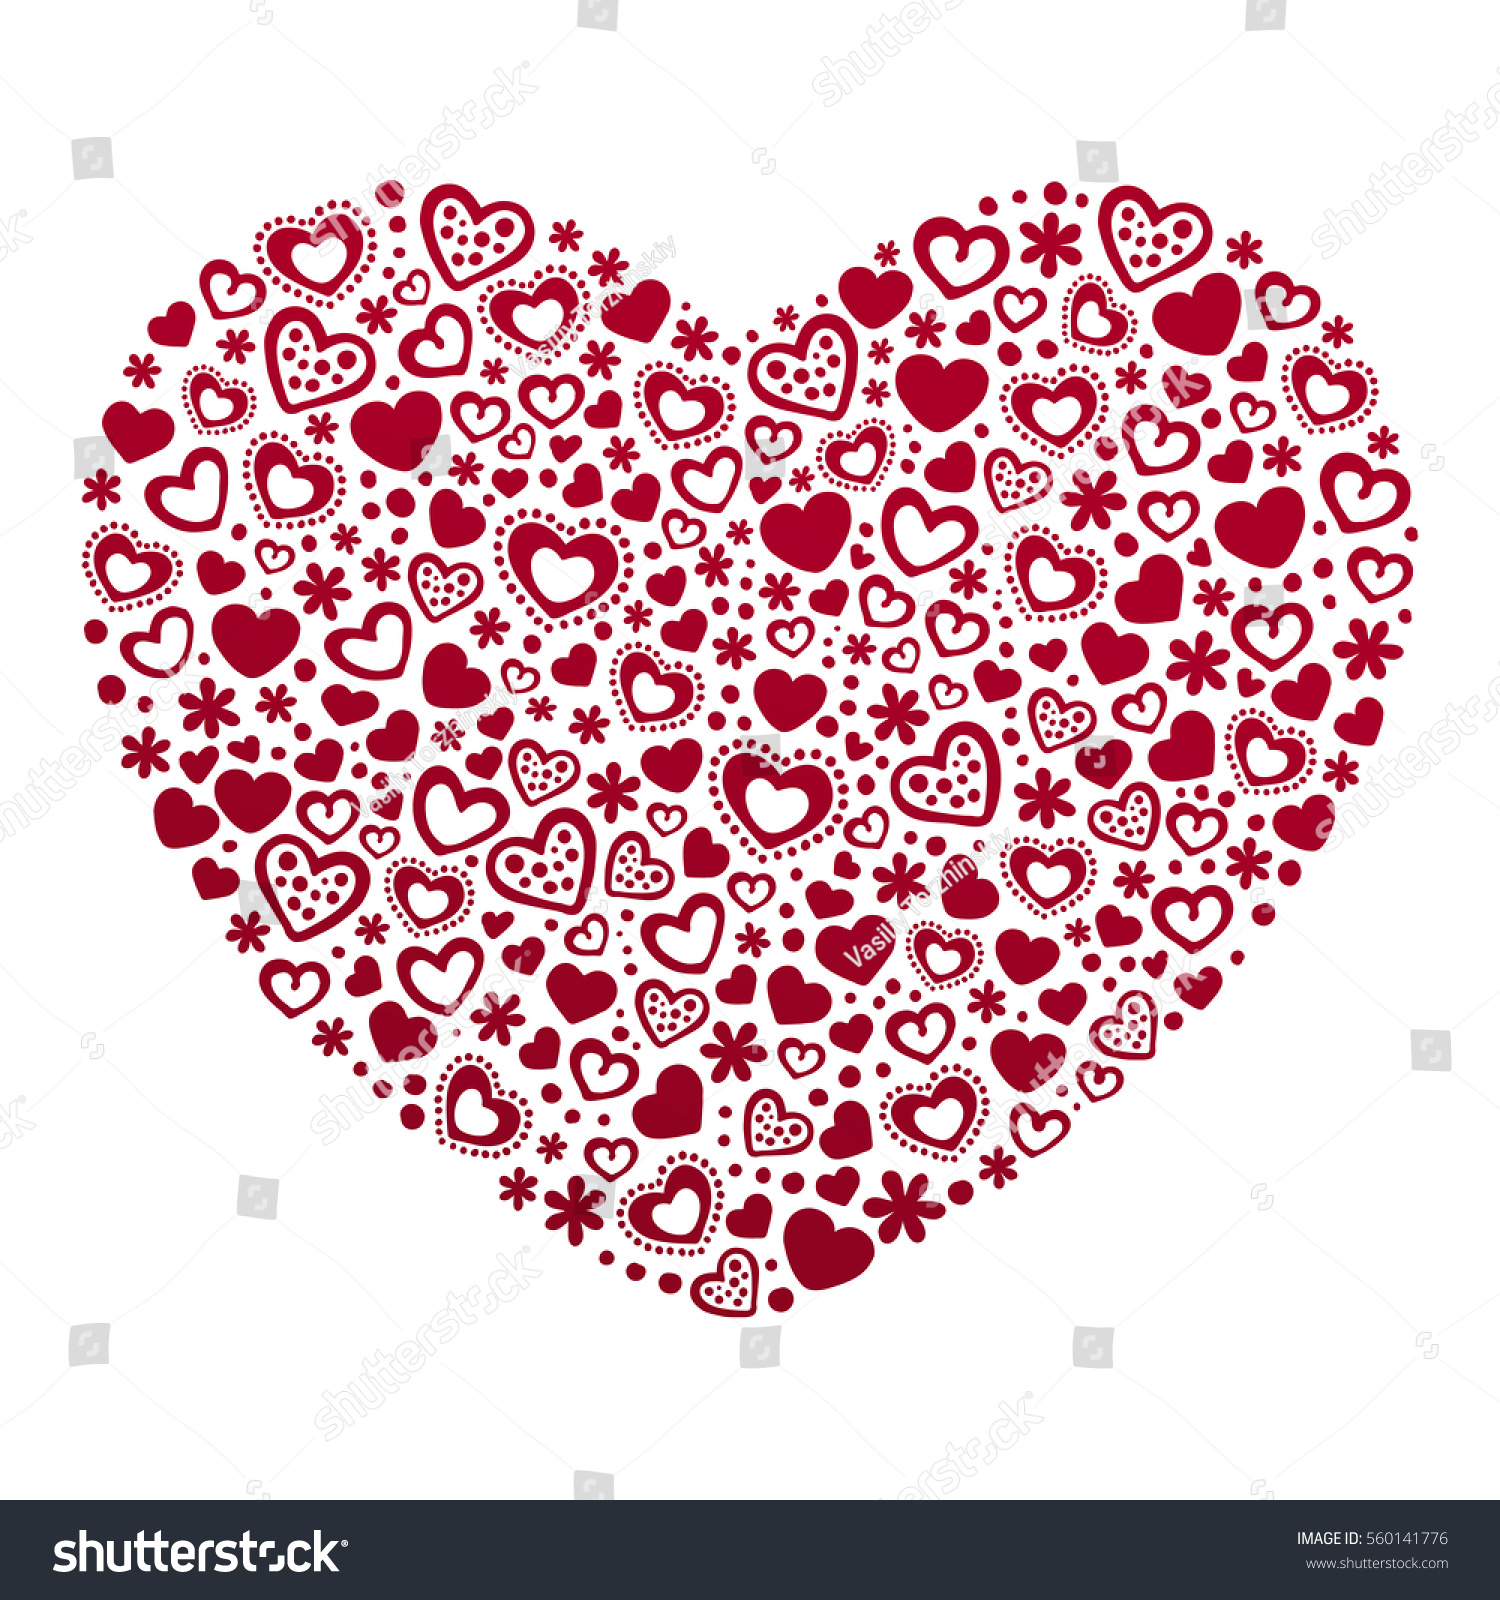 Valentines Day Card Template Hearts Card Stock Vector HD (Royalty ...